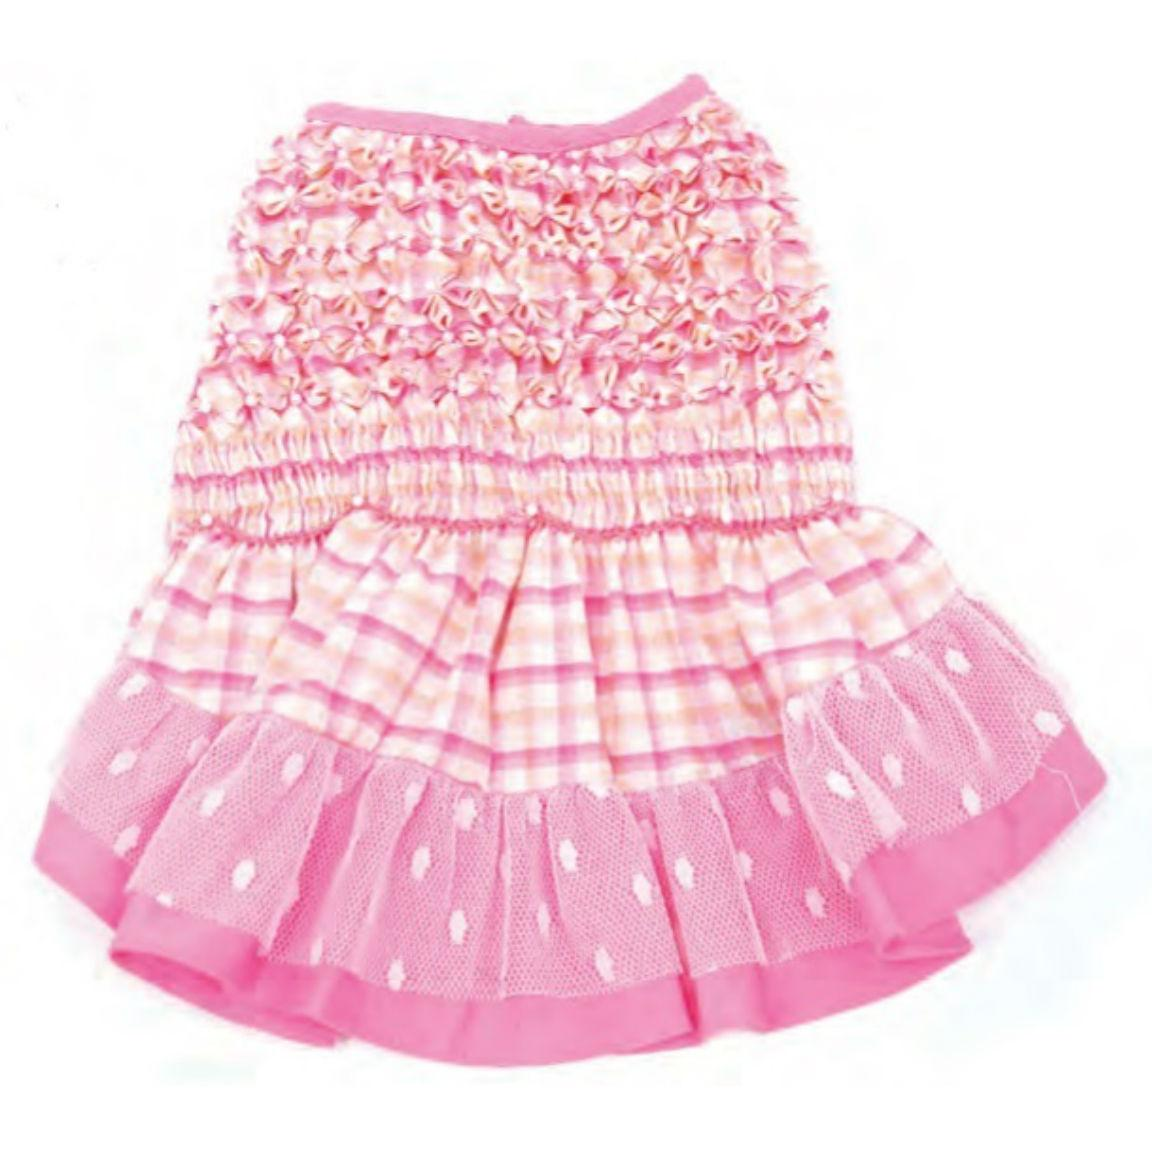 Check Please Hand Smocked Dog Dress By Oscar Newman